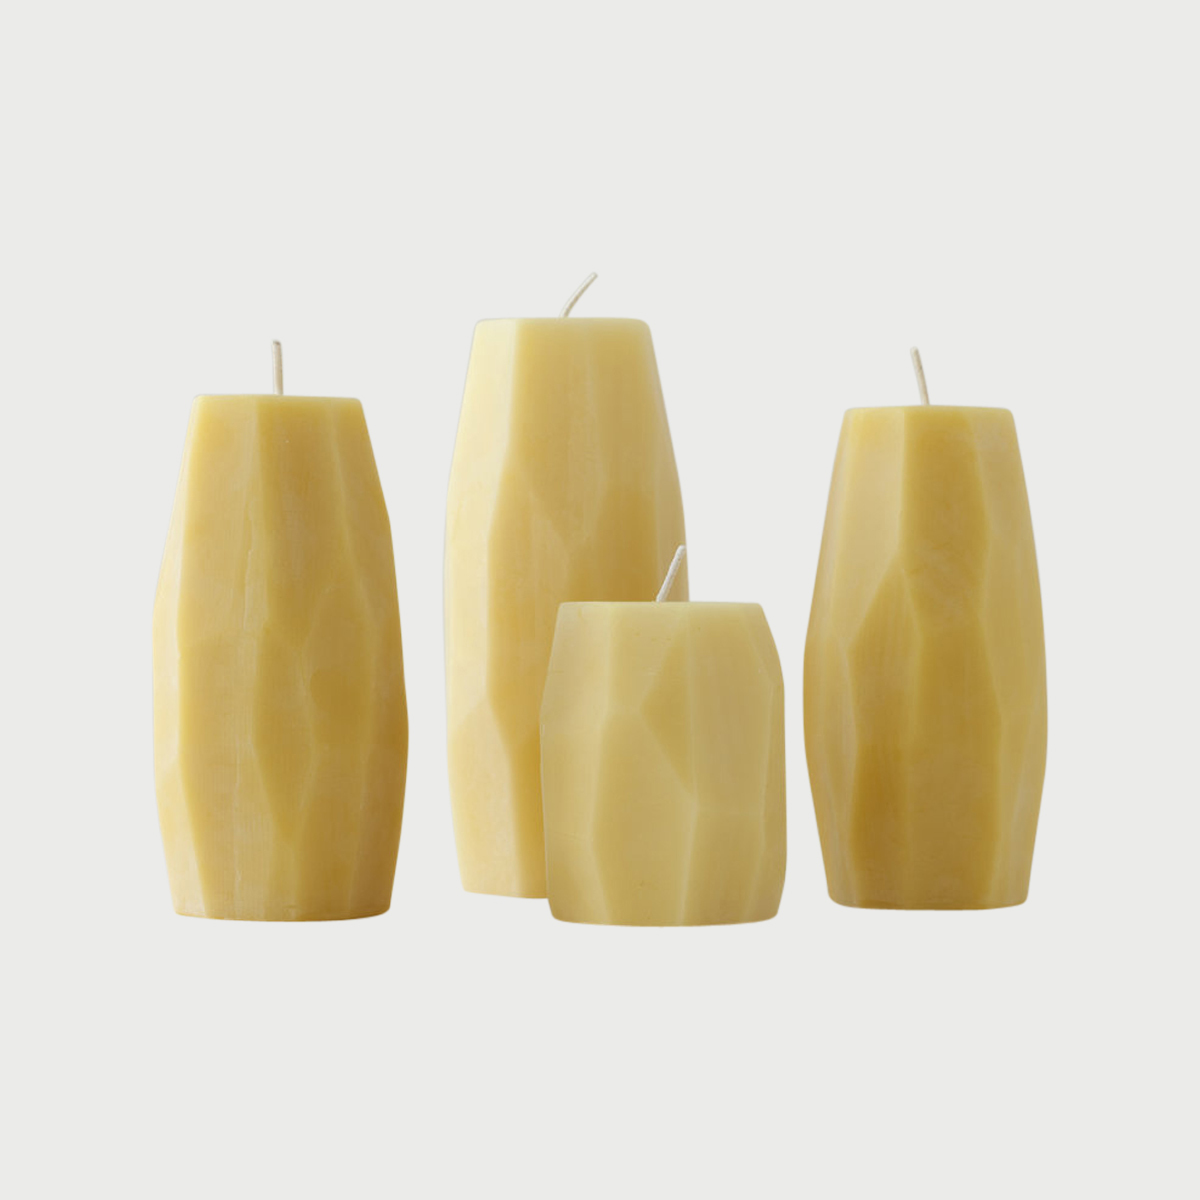 Faceted Beeswax Pillars